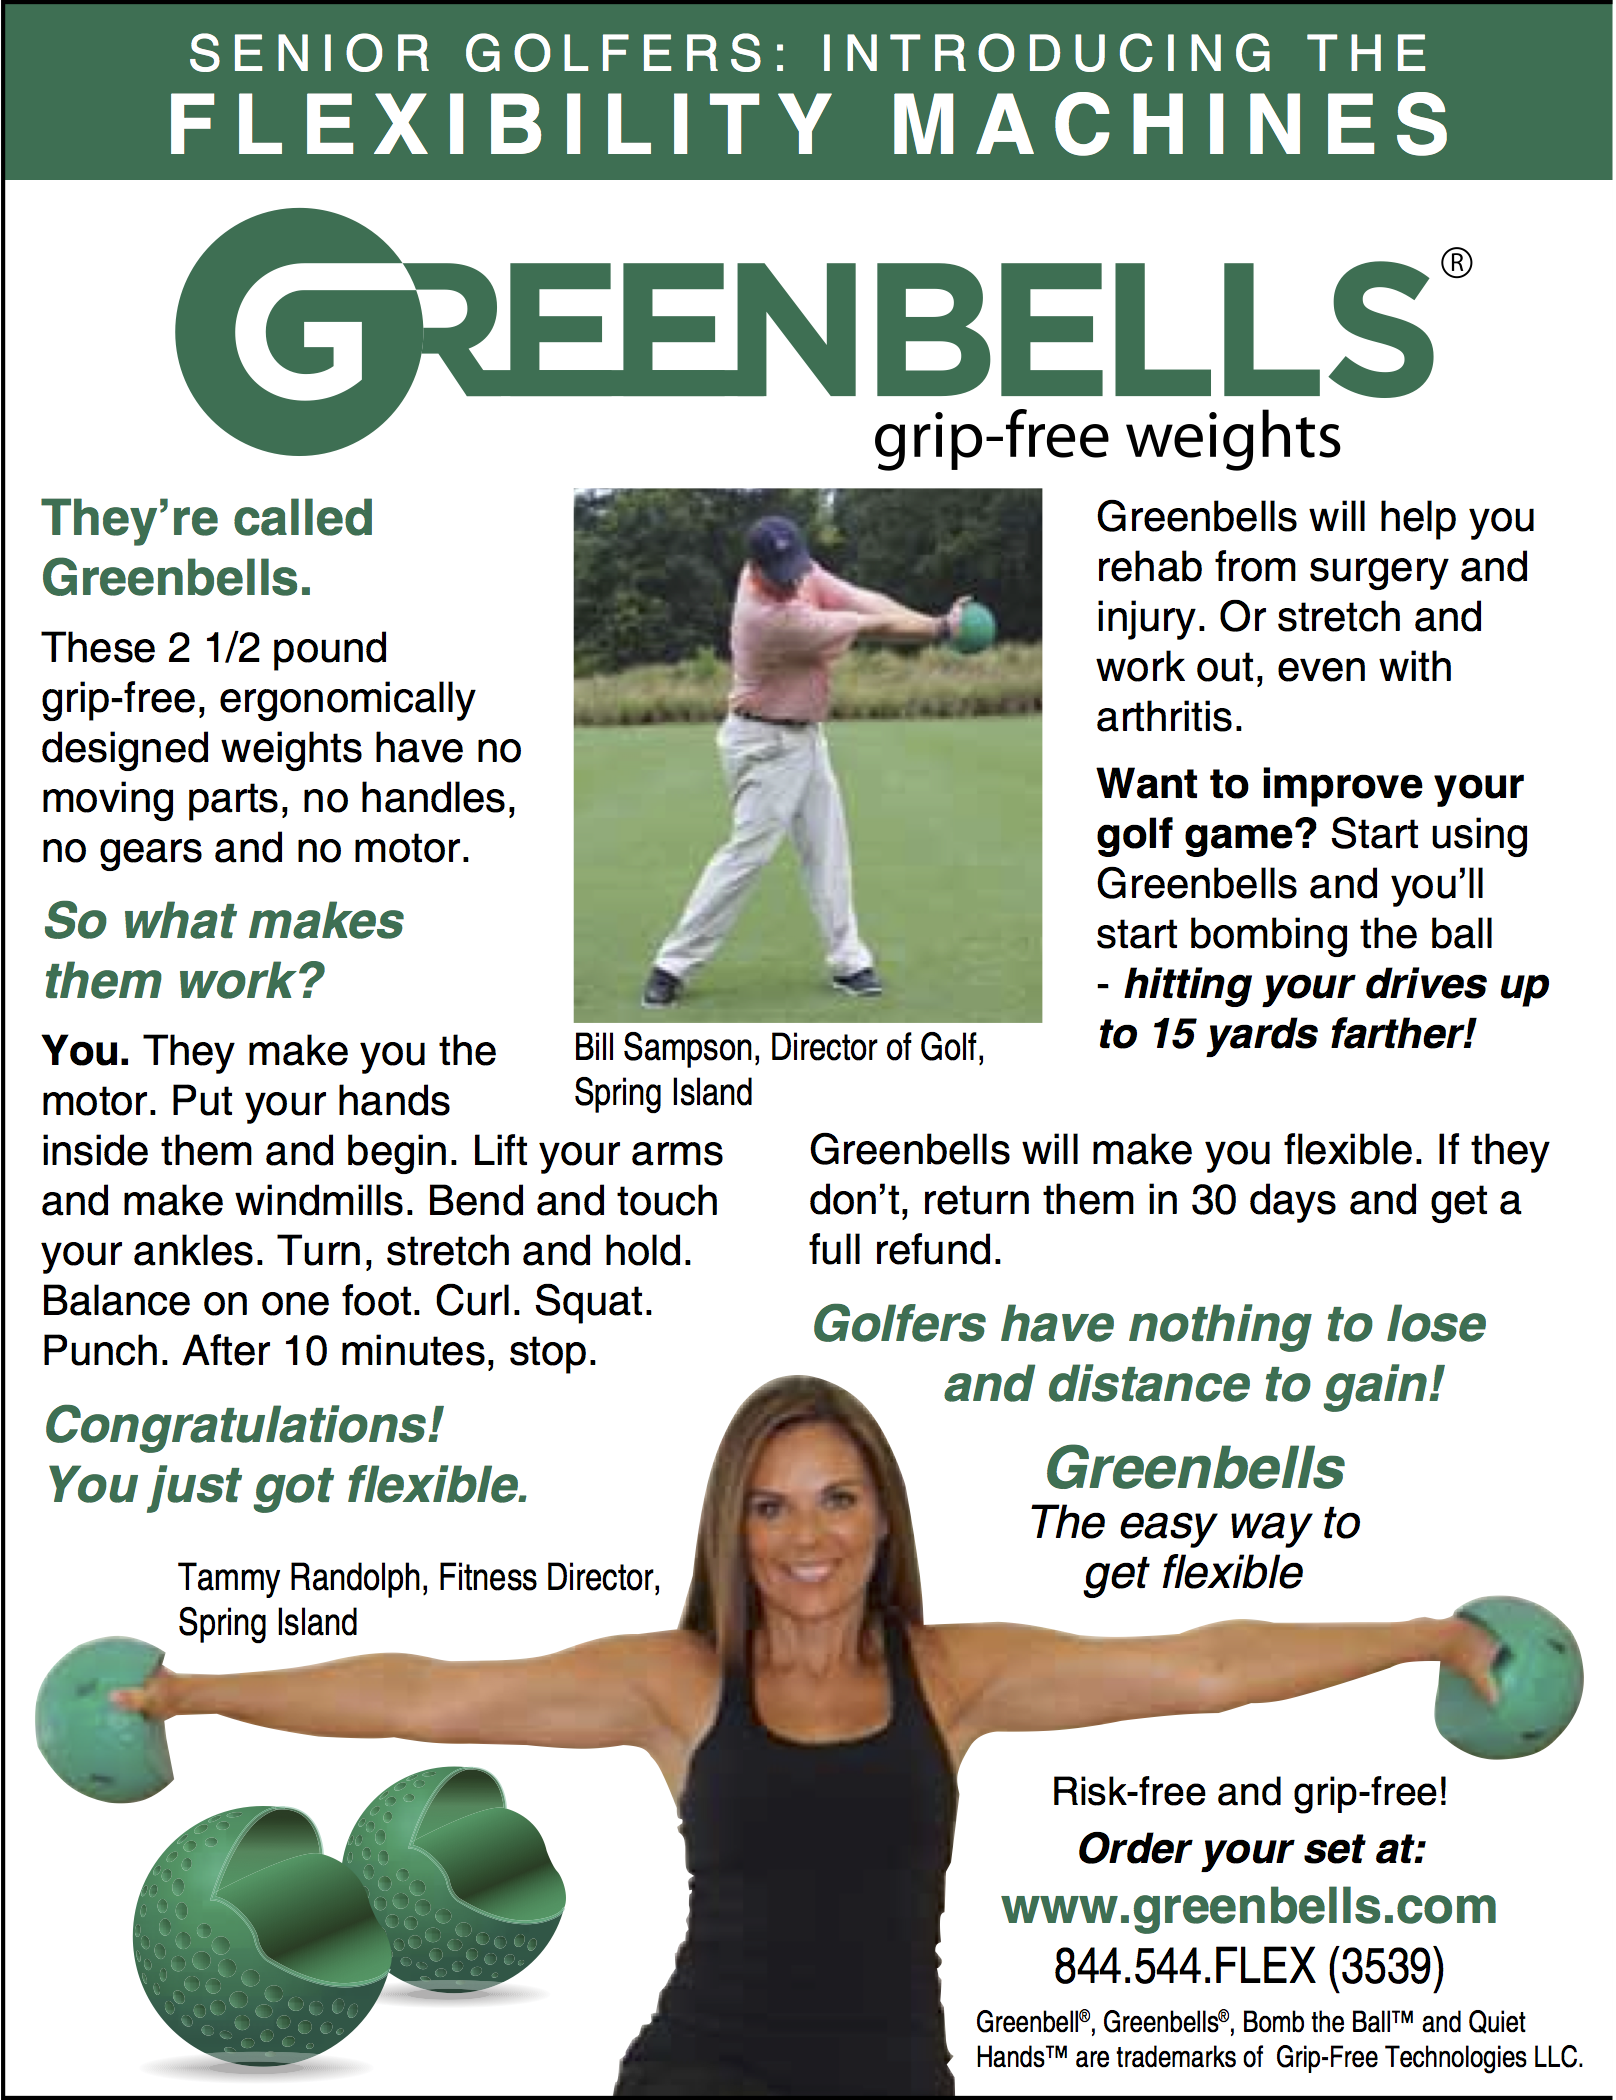 Greenbells Flexibility Machines 1 copy.png